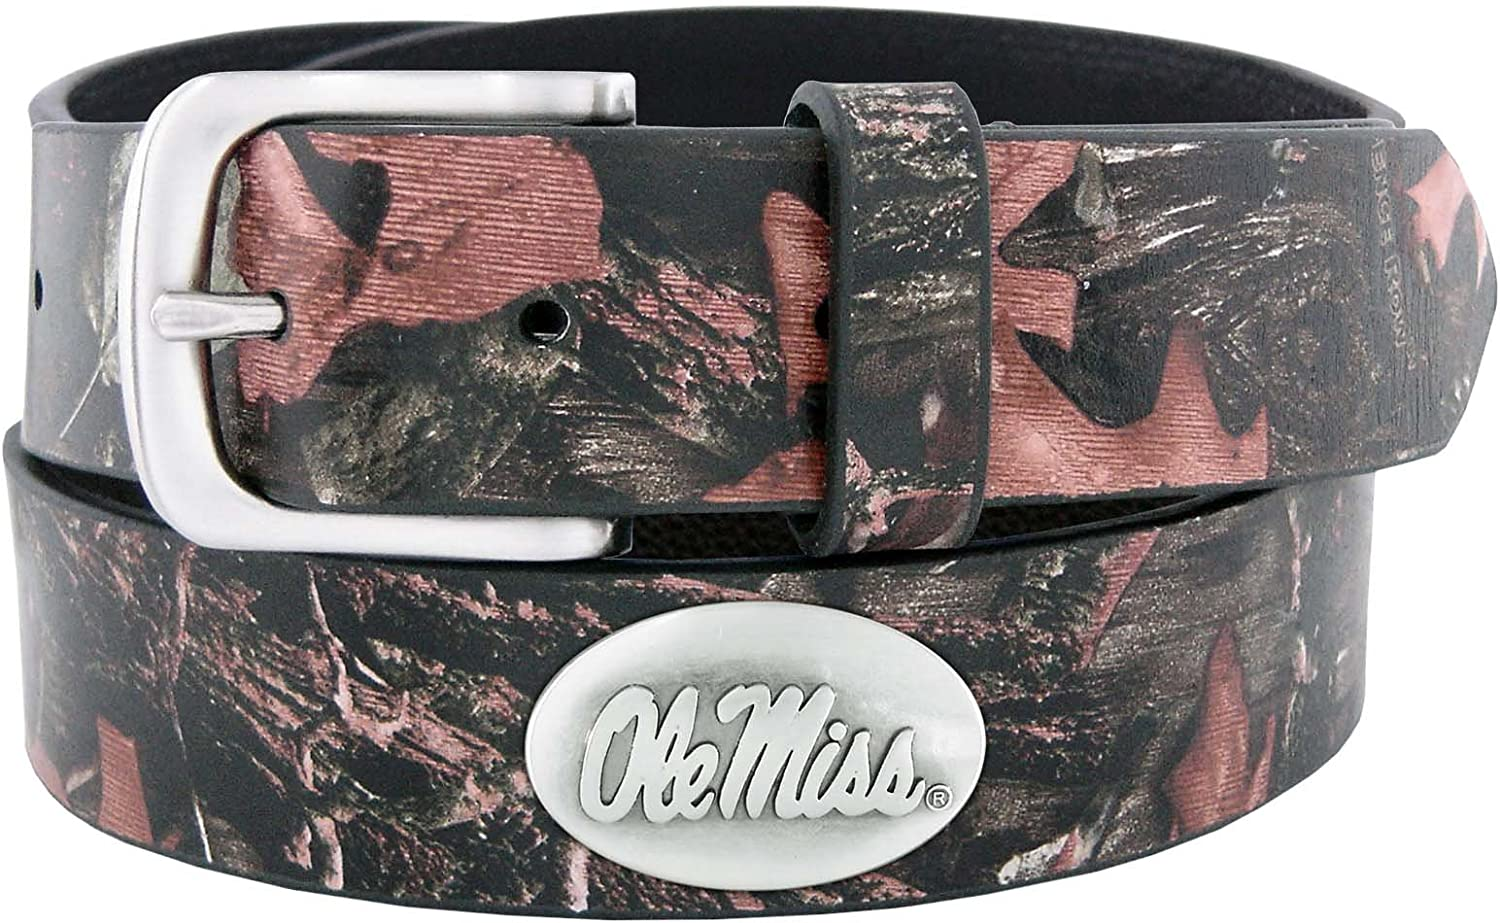 NCAA Mississippi Old Miss Rebels Zep-Pro Leather Concho Belt